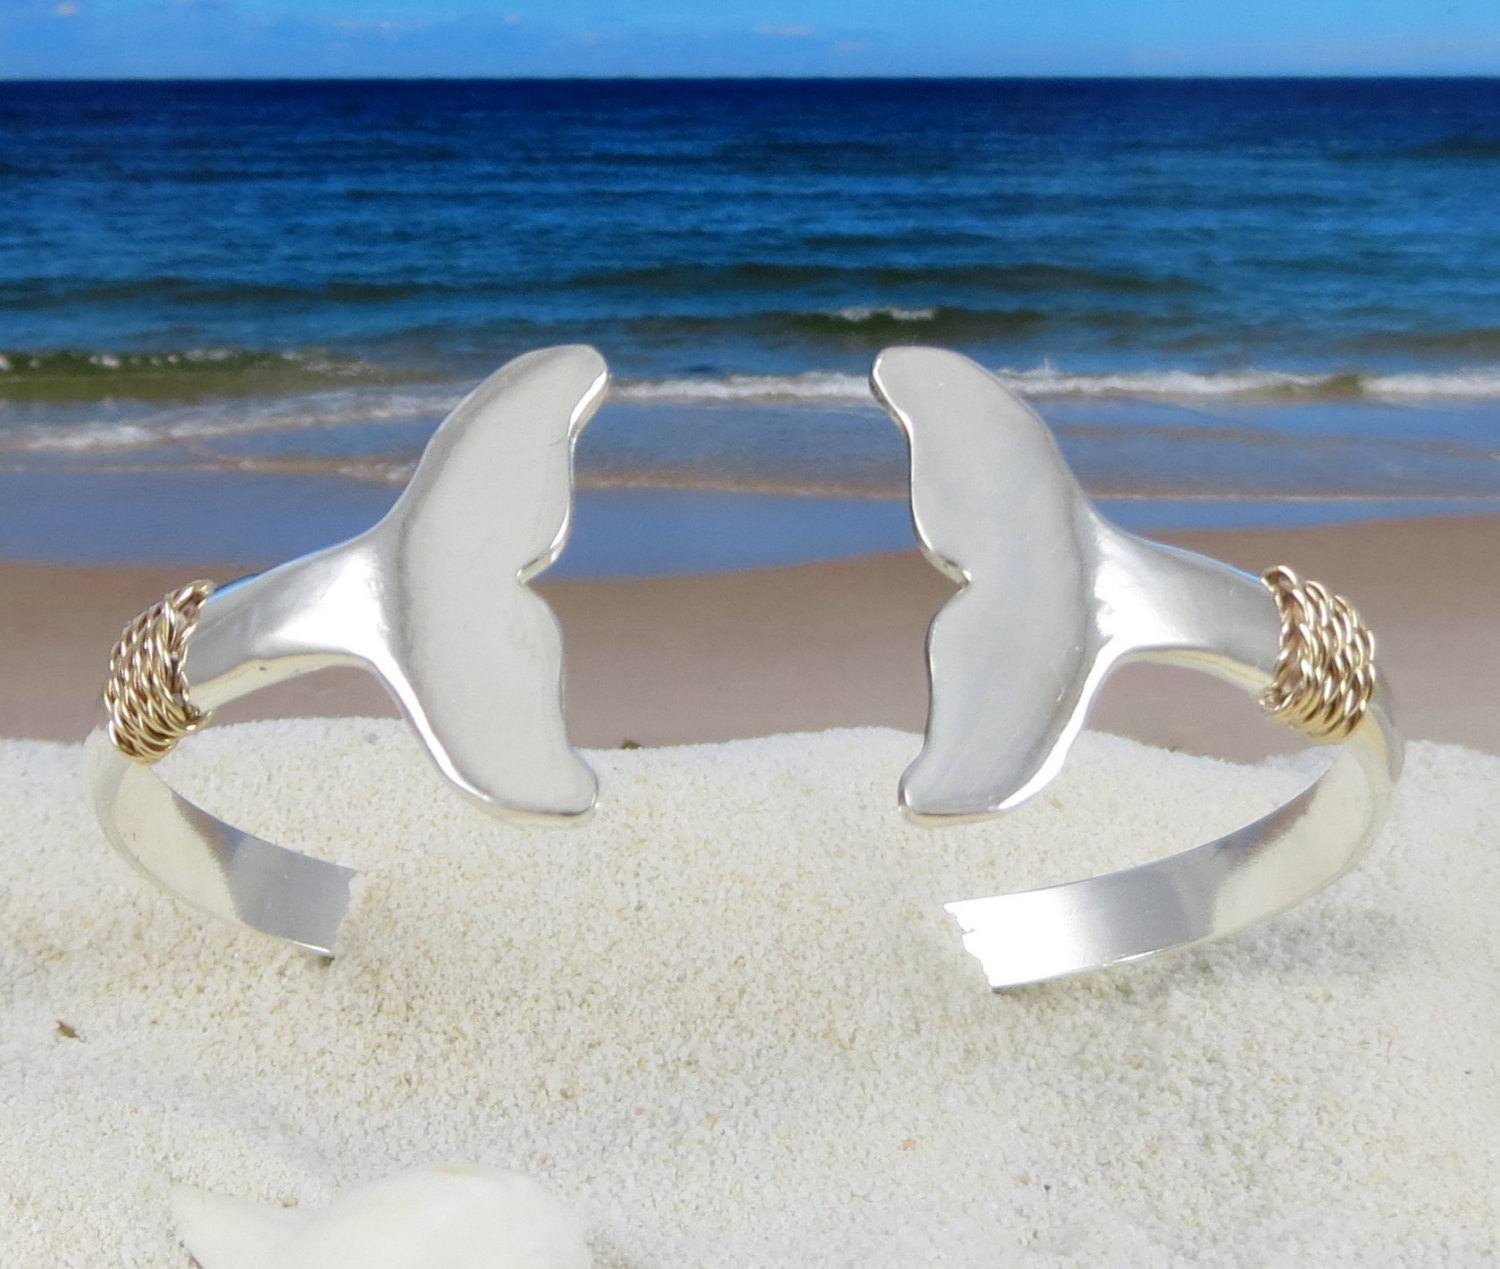 Nautical Whale Tail Bracelet Hand Crafted On Cape Cod Out